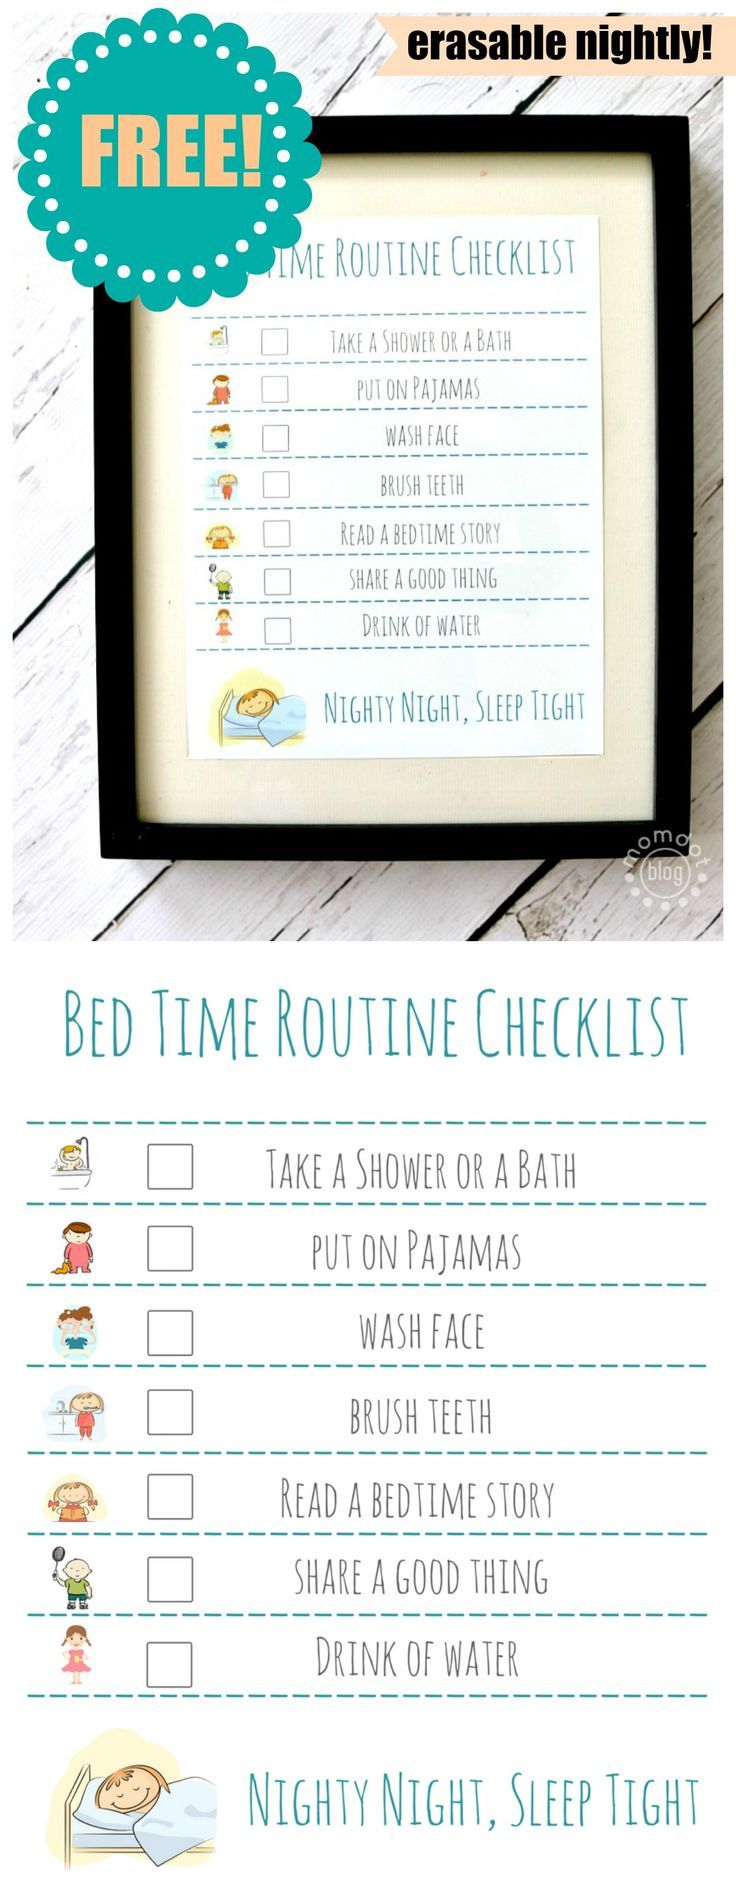 Bedtime Routine FREE Printable : Erase nightly to keep on task for Bed time…